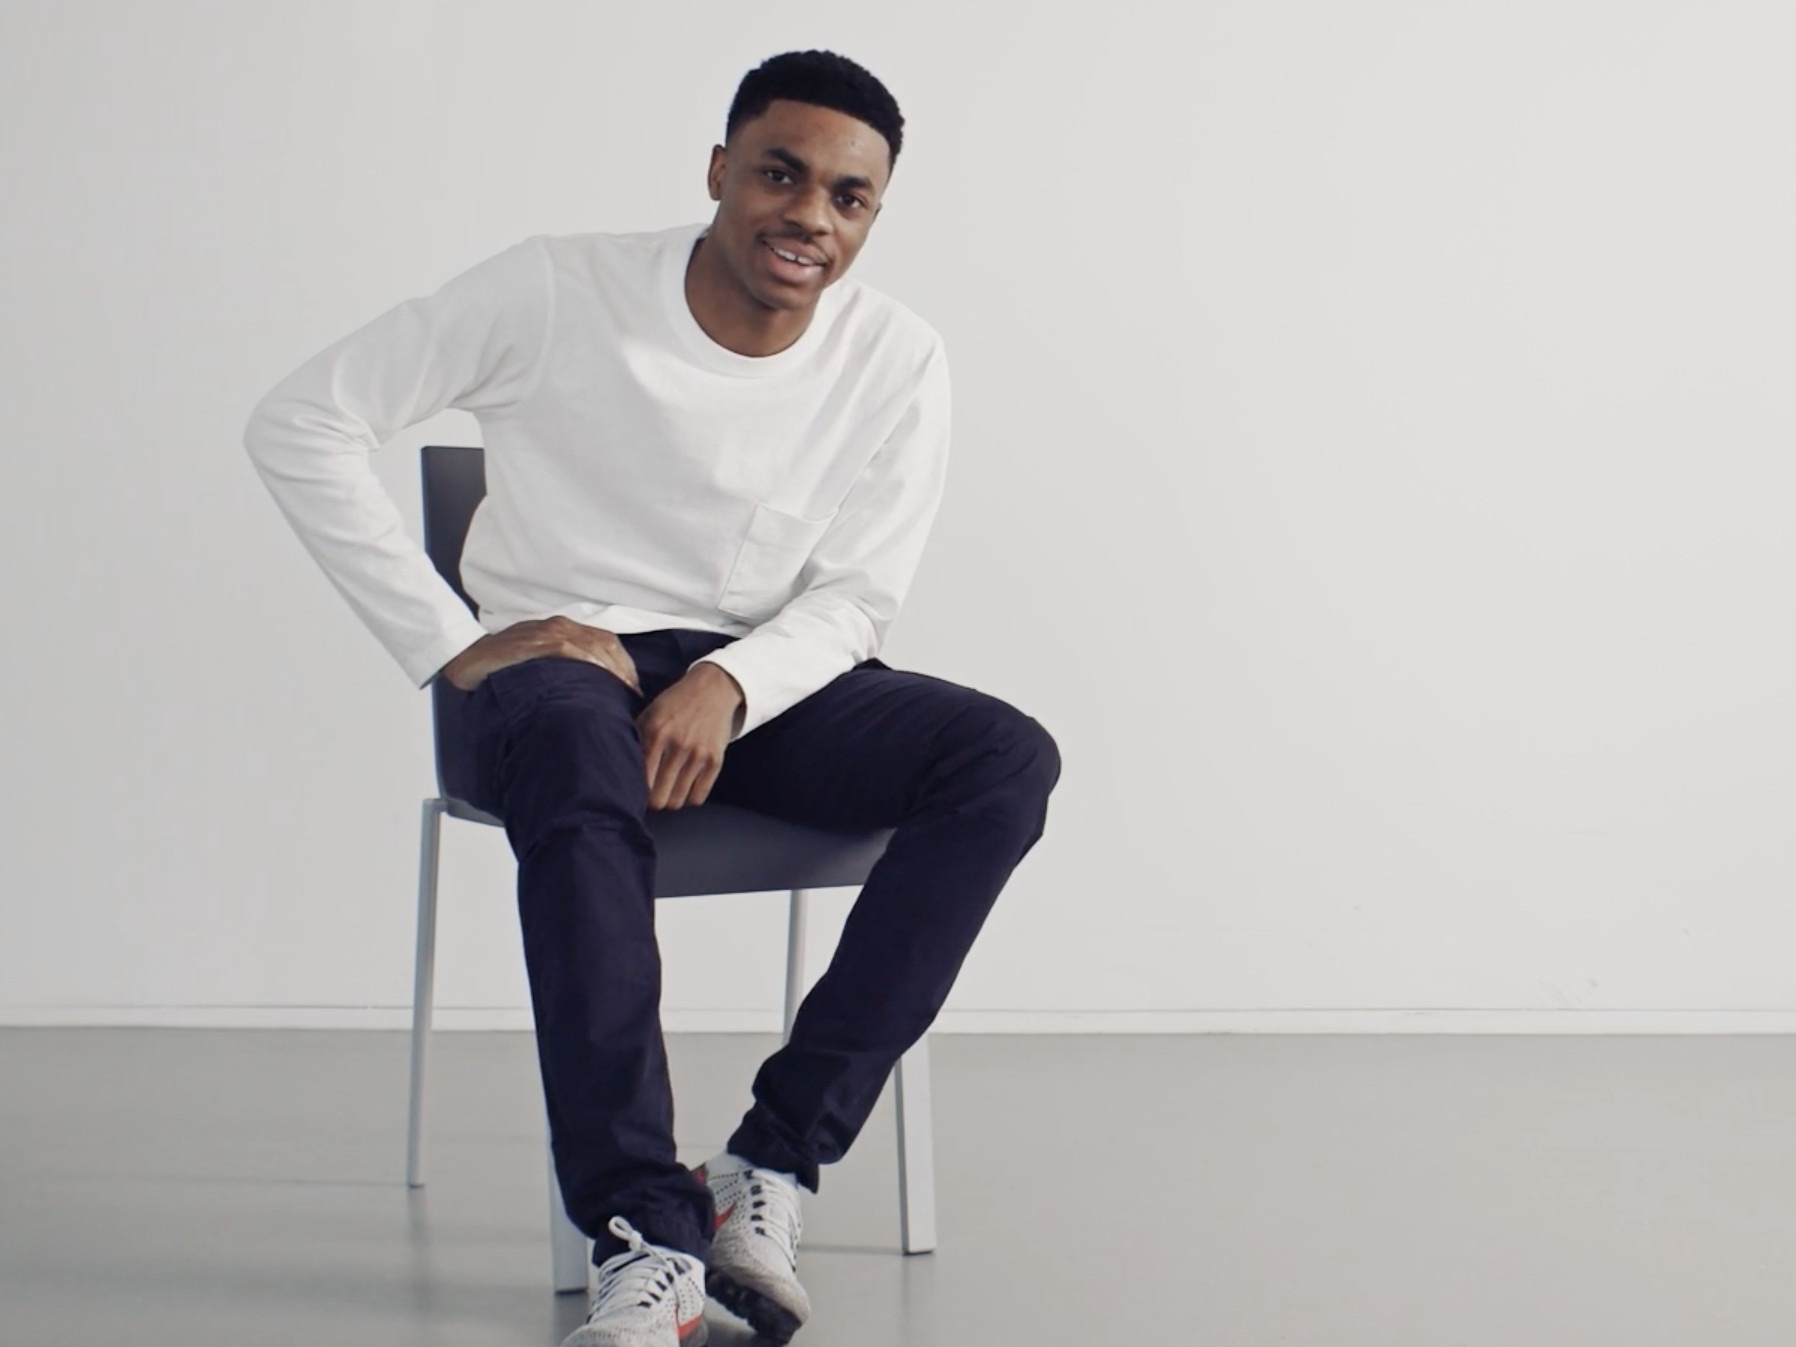 GTFOMD' Is Vince Staples At His Childish Worst - Baeble Music